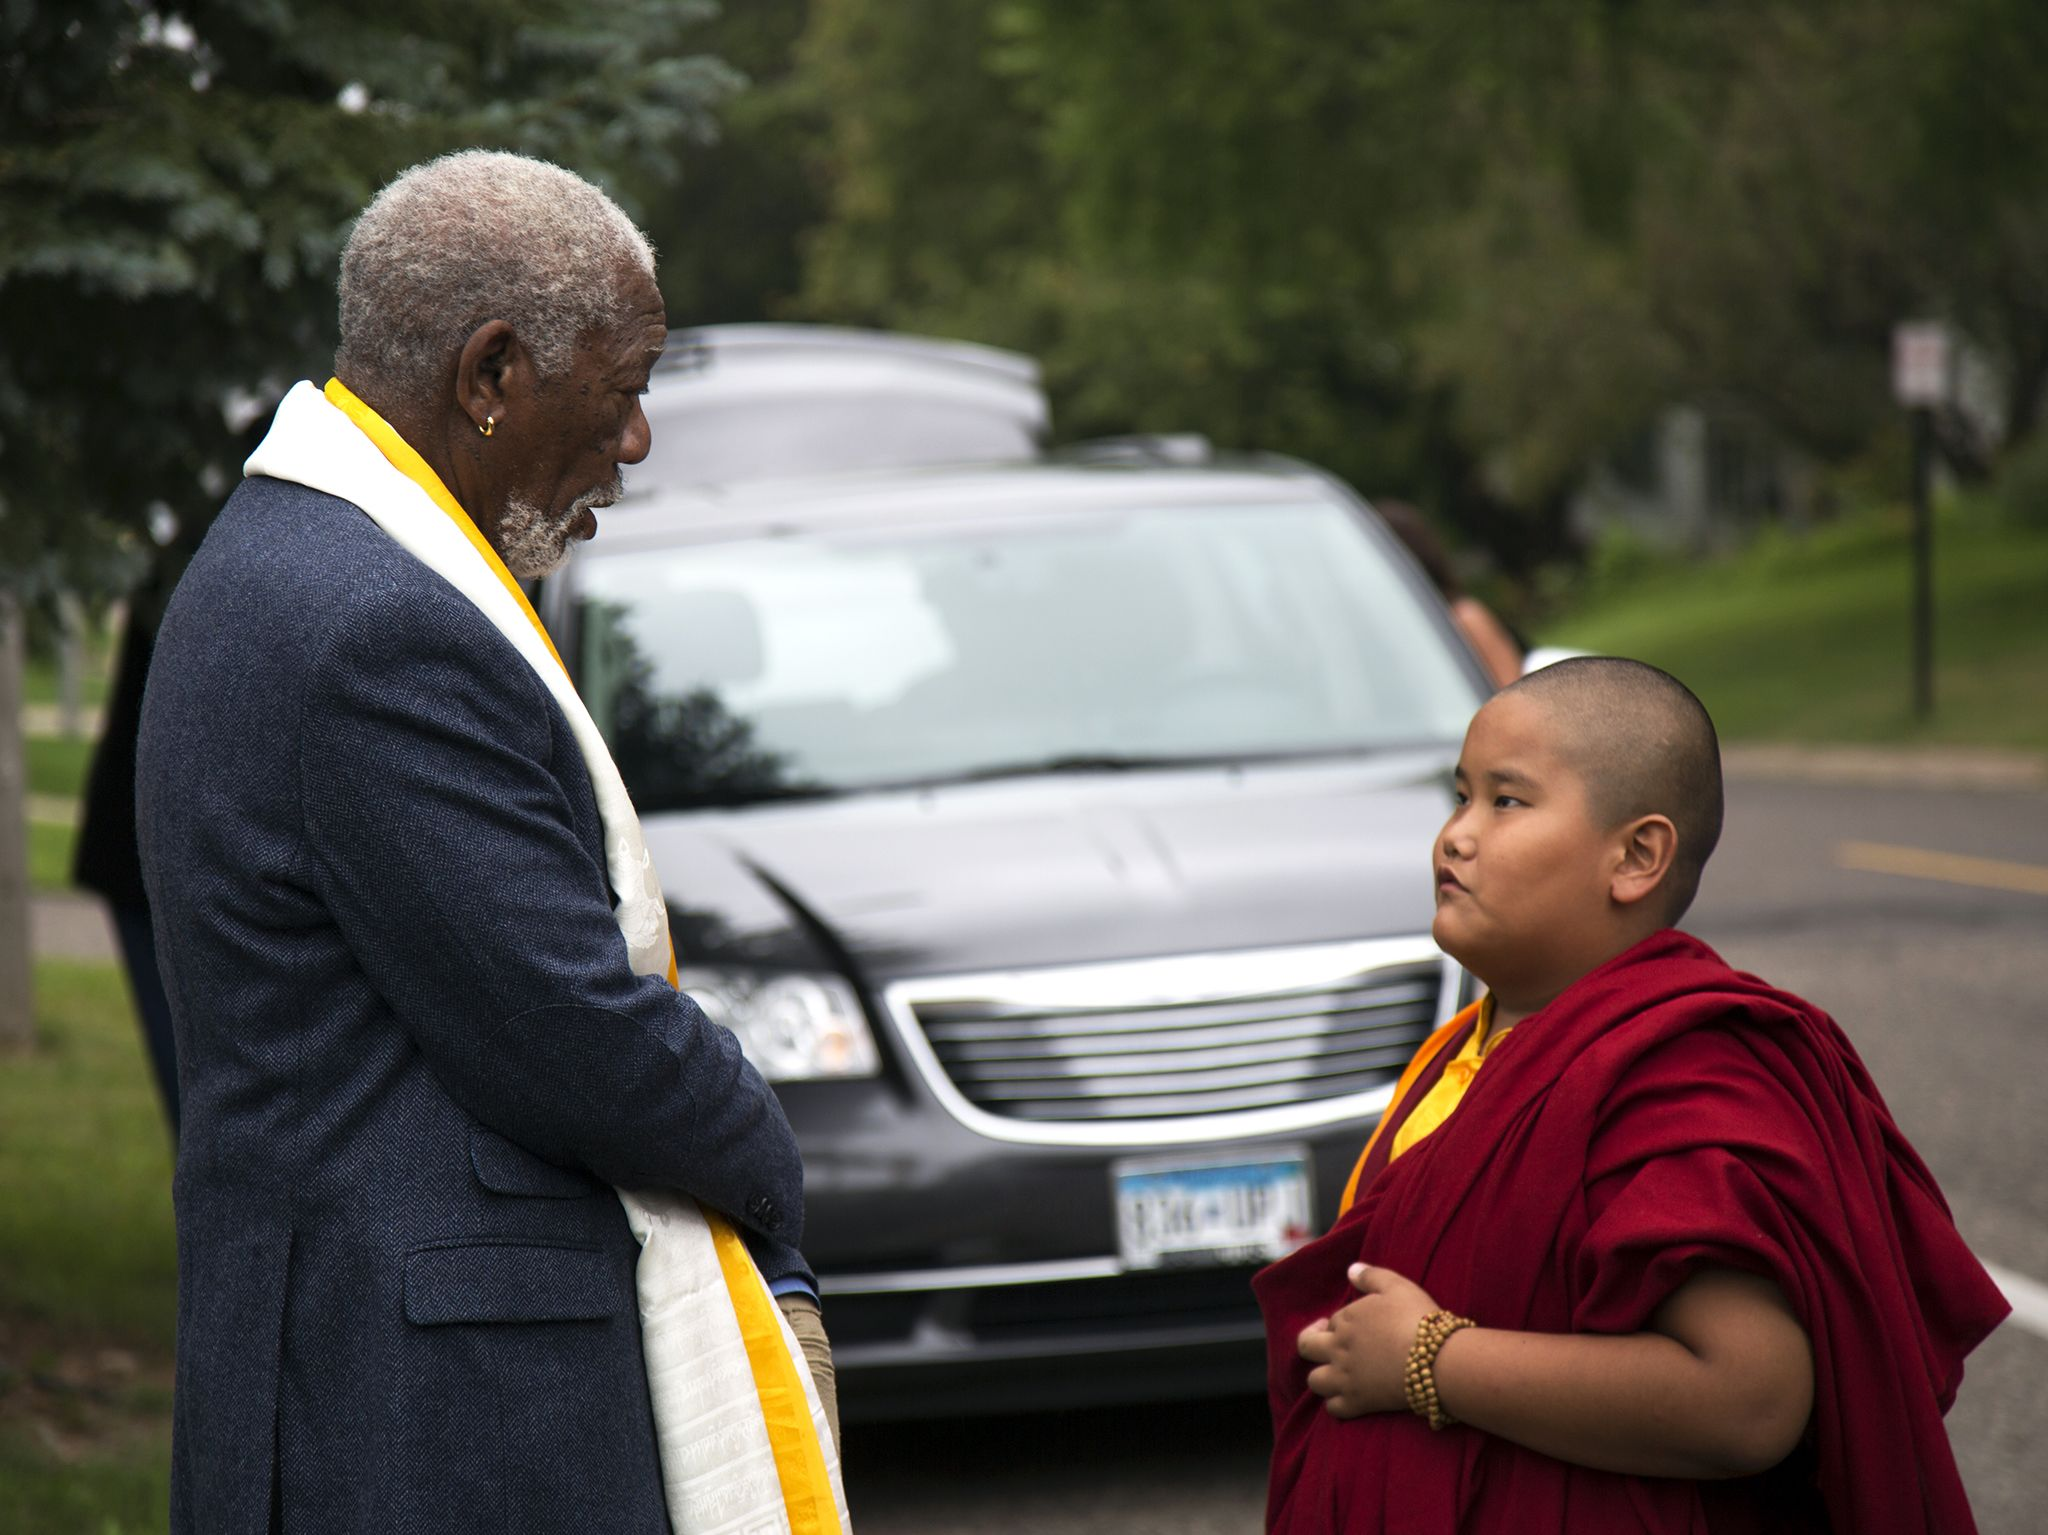 Minneapolis, Minn: Outside the Dorjee family home, Morgan Freeman speaks with nine year old... [Photo of the day - آوریل 2017]